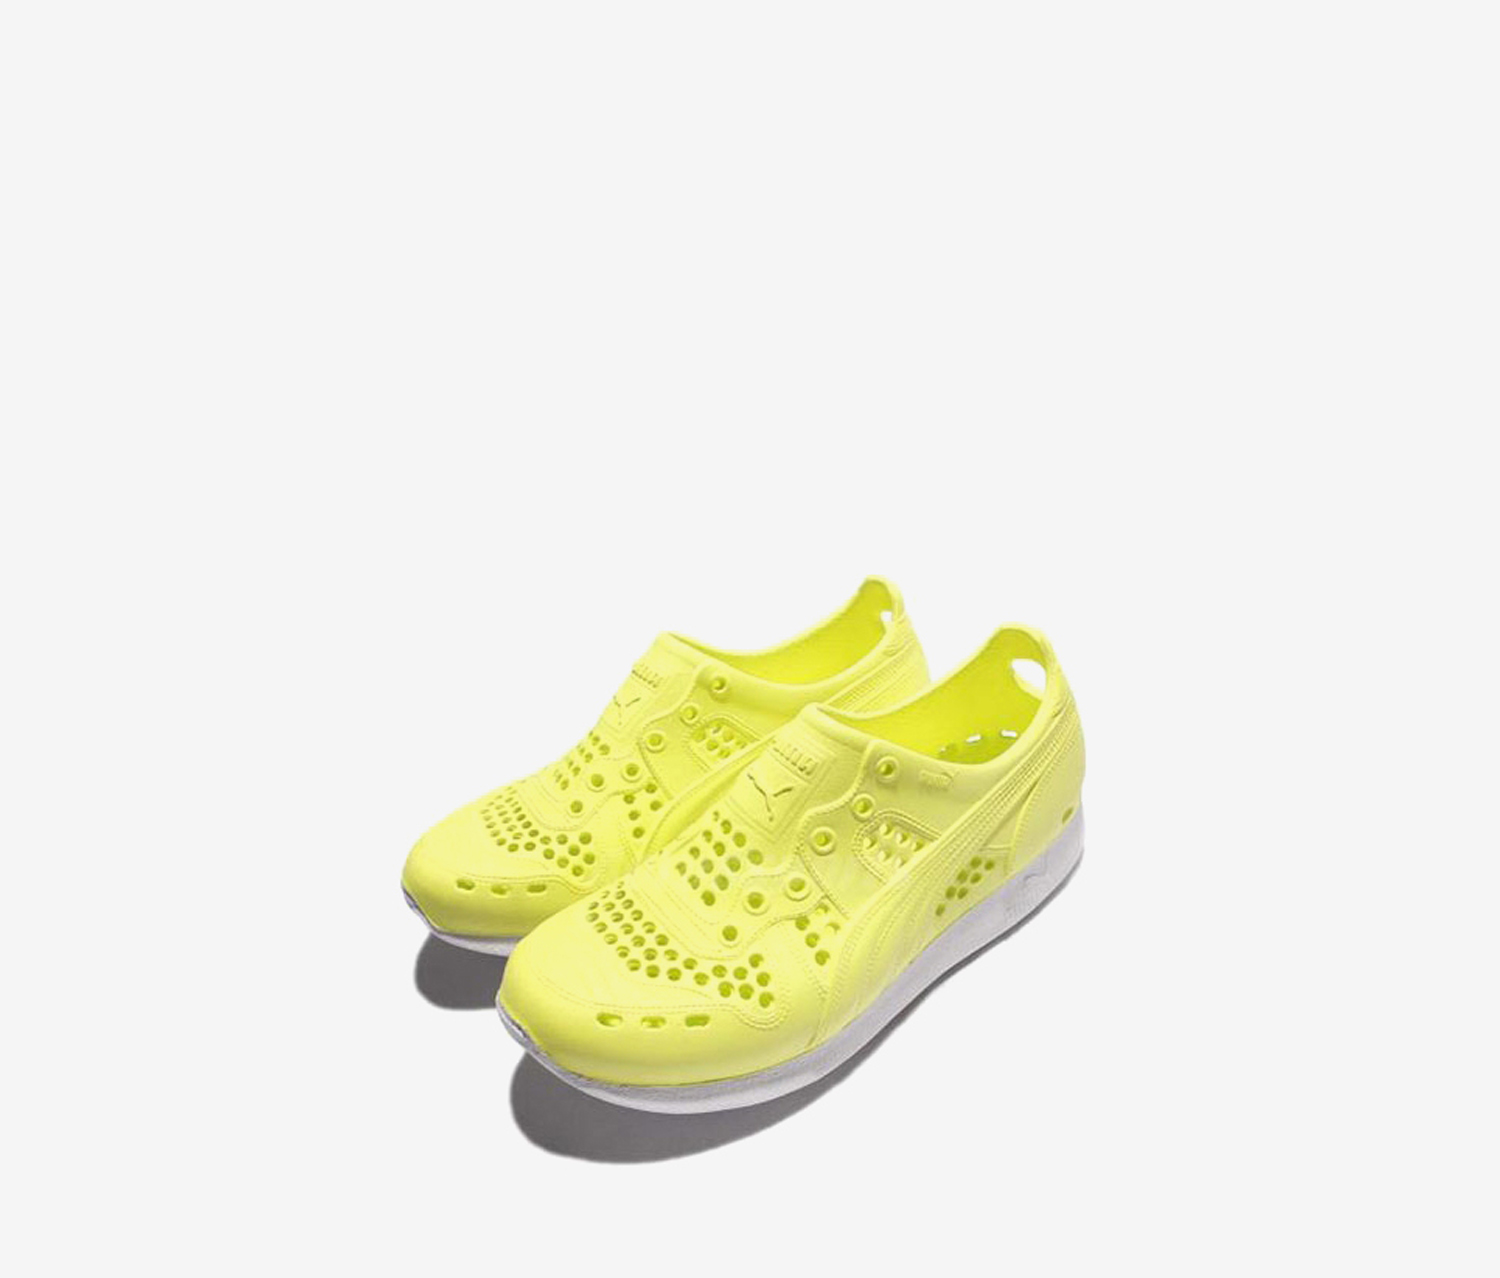 Puma Men's Rubber Shoes, Lime Green